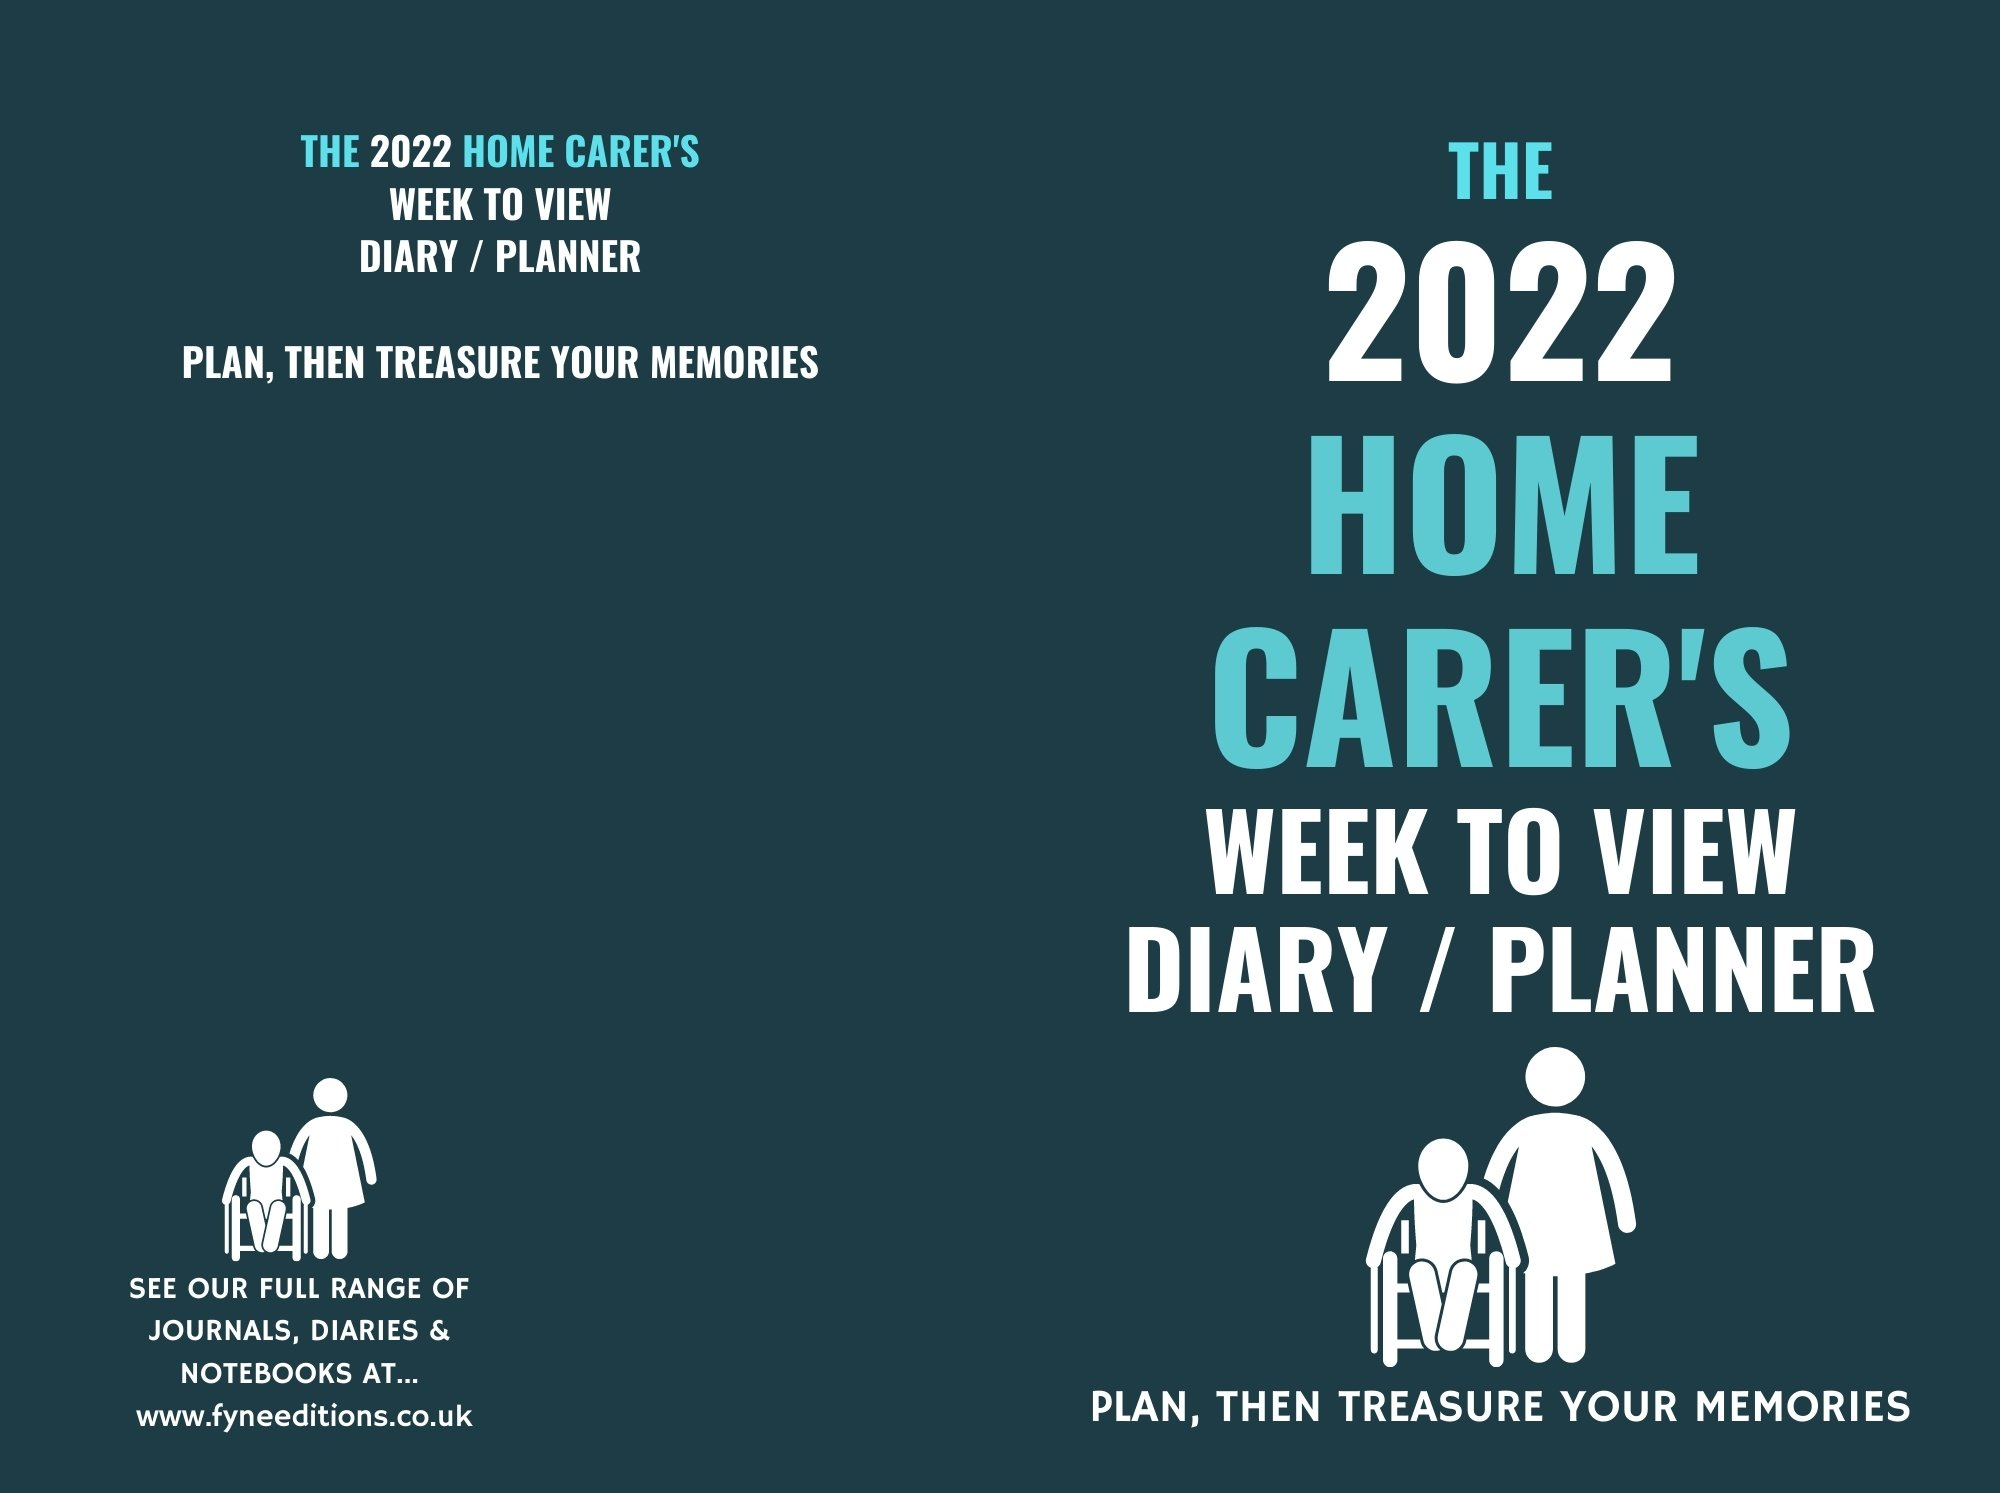 Cover - The 2022 Home Carer's Week to View Diary Planner